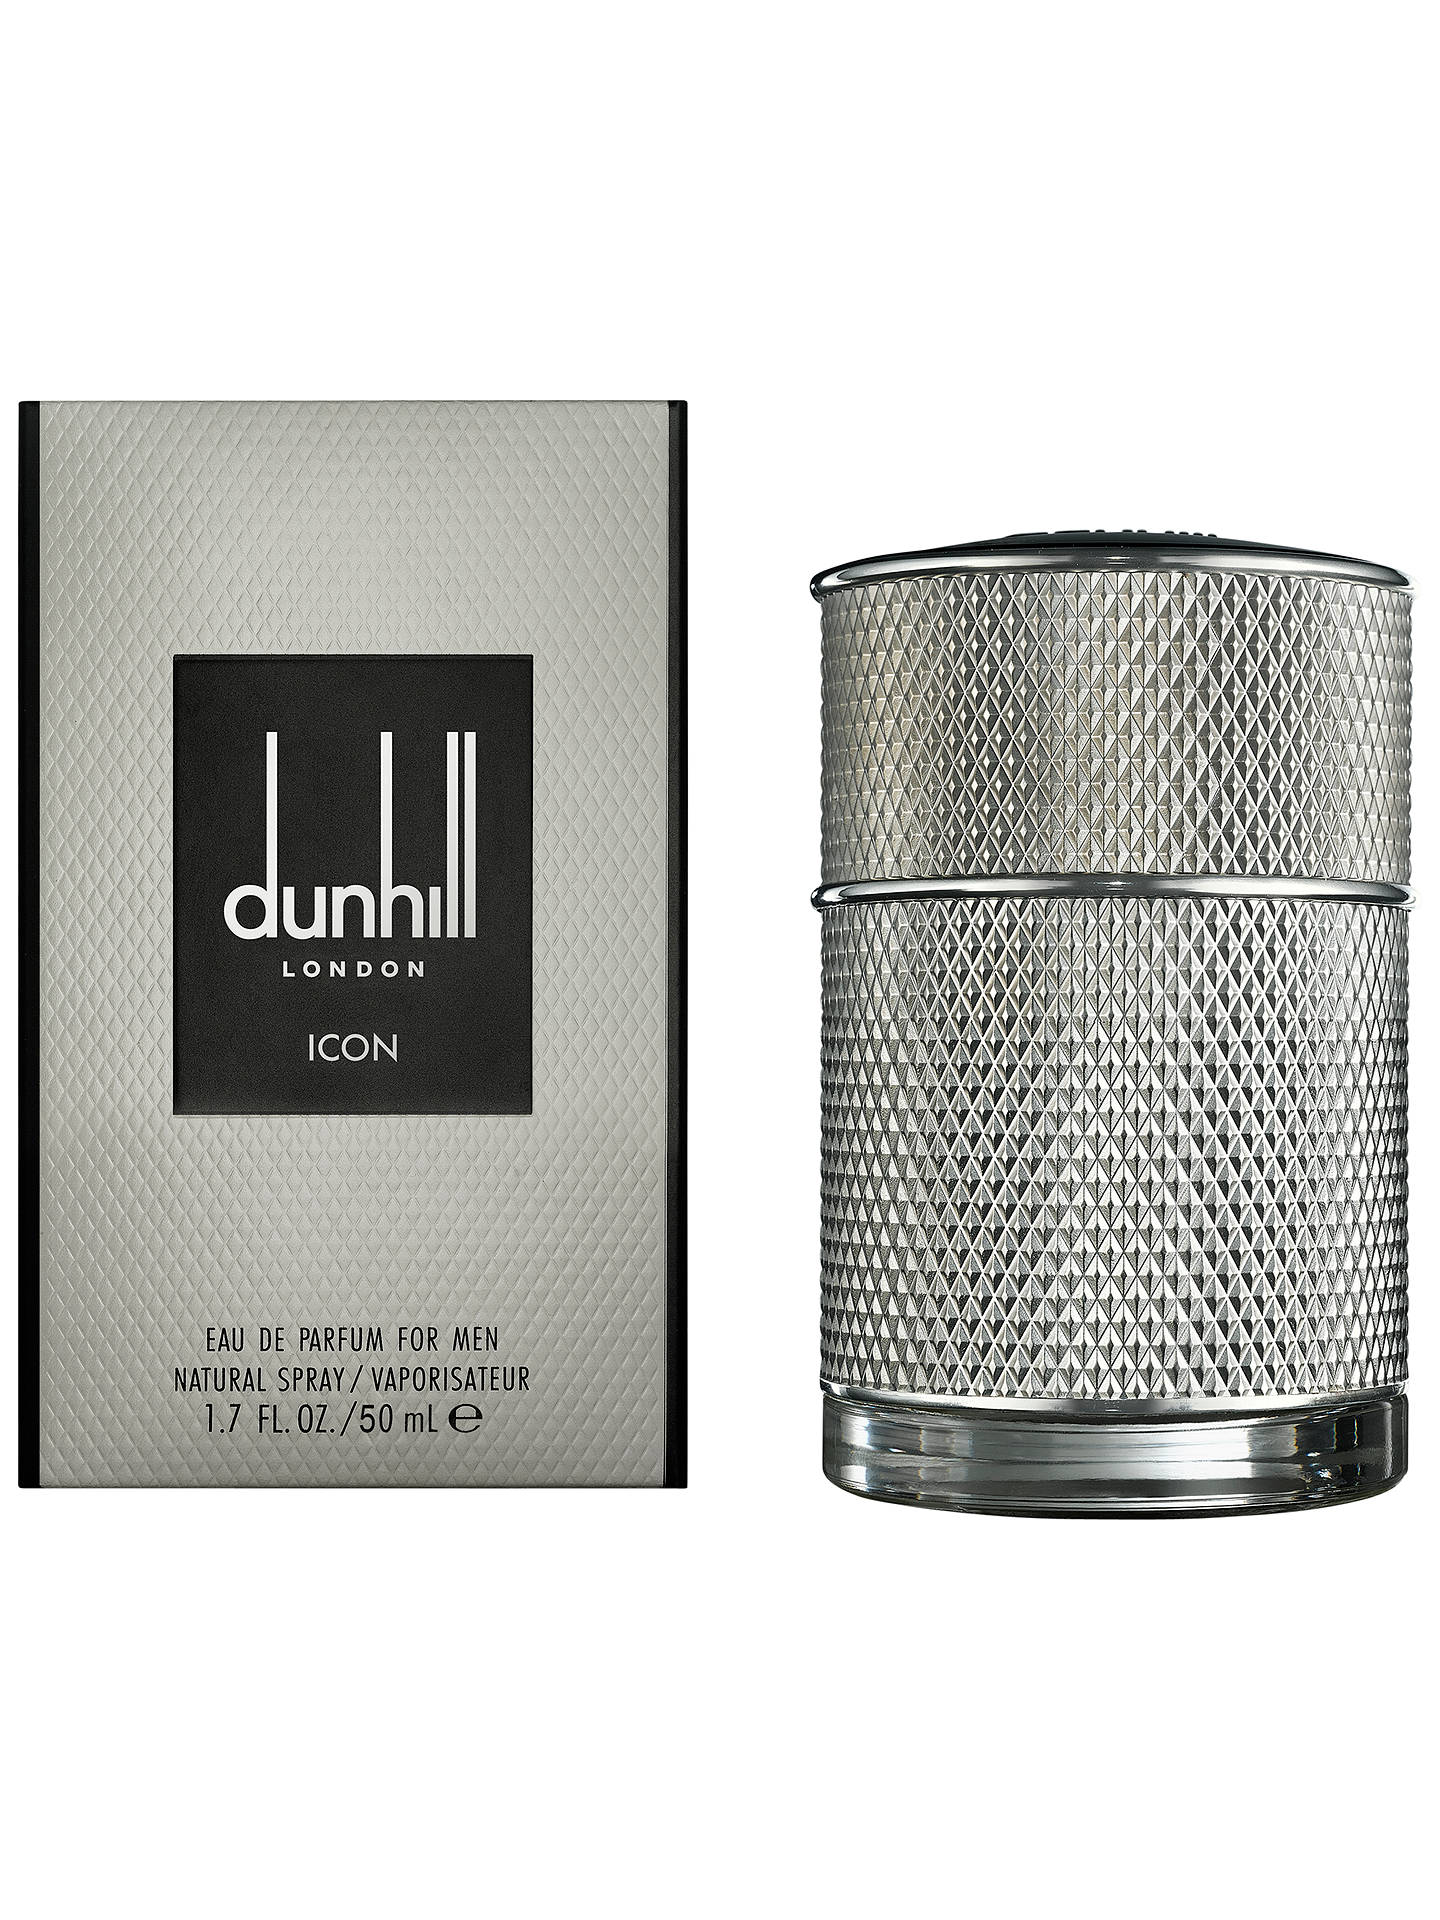 Buy Dunhill London ICON Eau de Parfum, 50ml Online at johnlewis.com